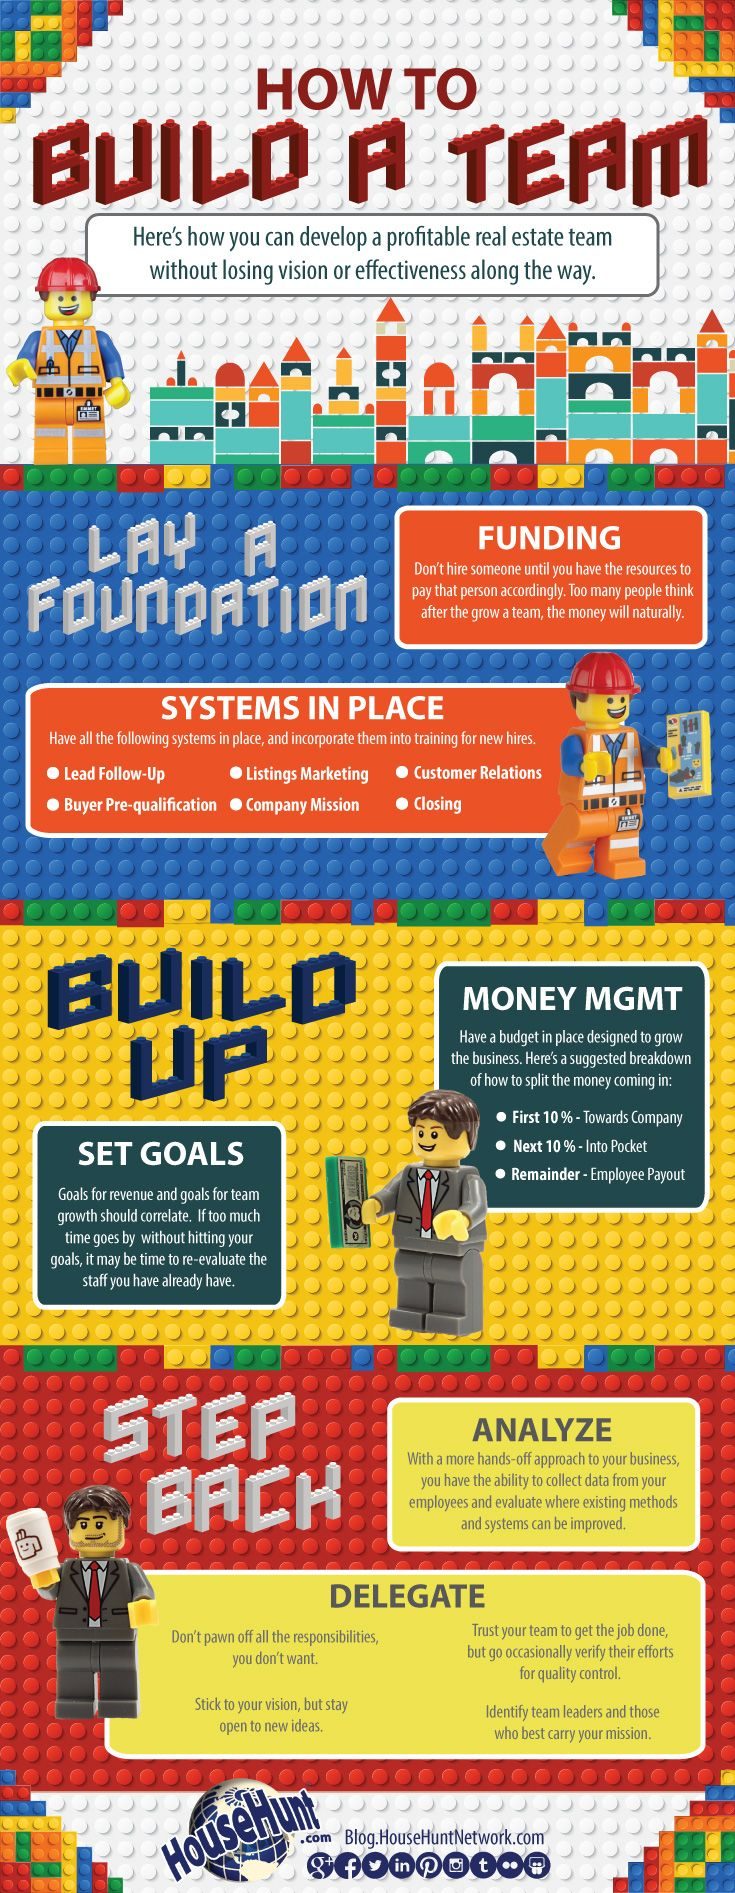 How to Build a Real Estate Team [Infographic]